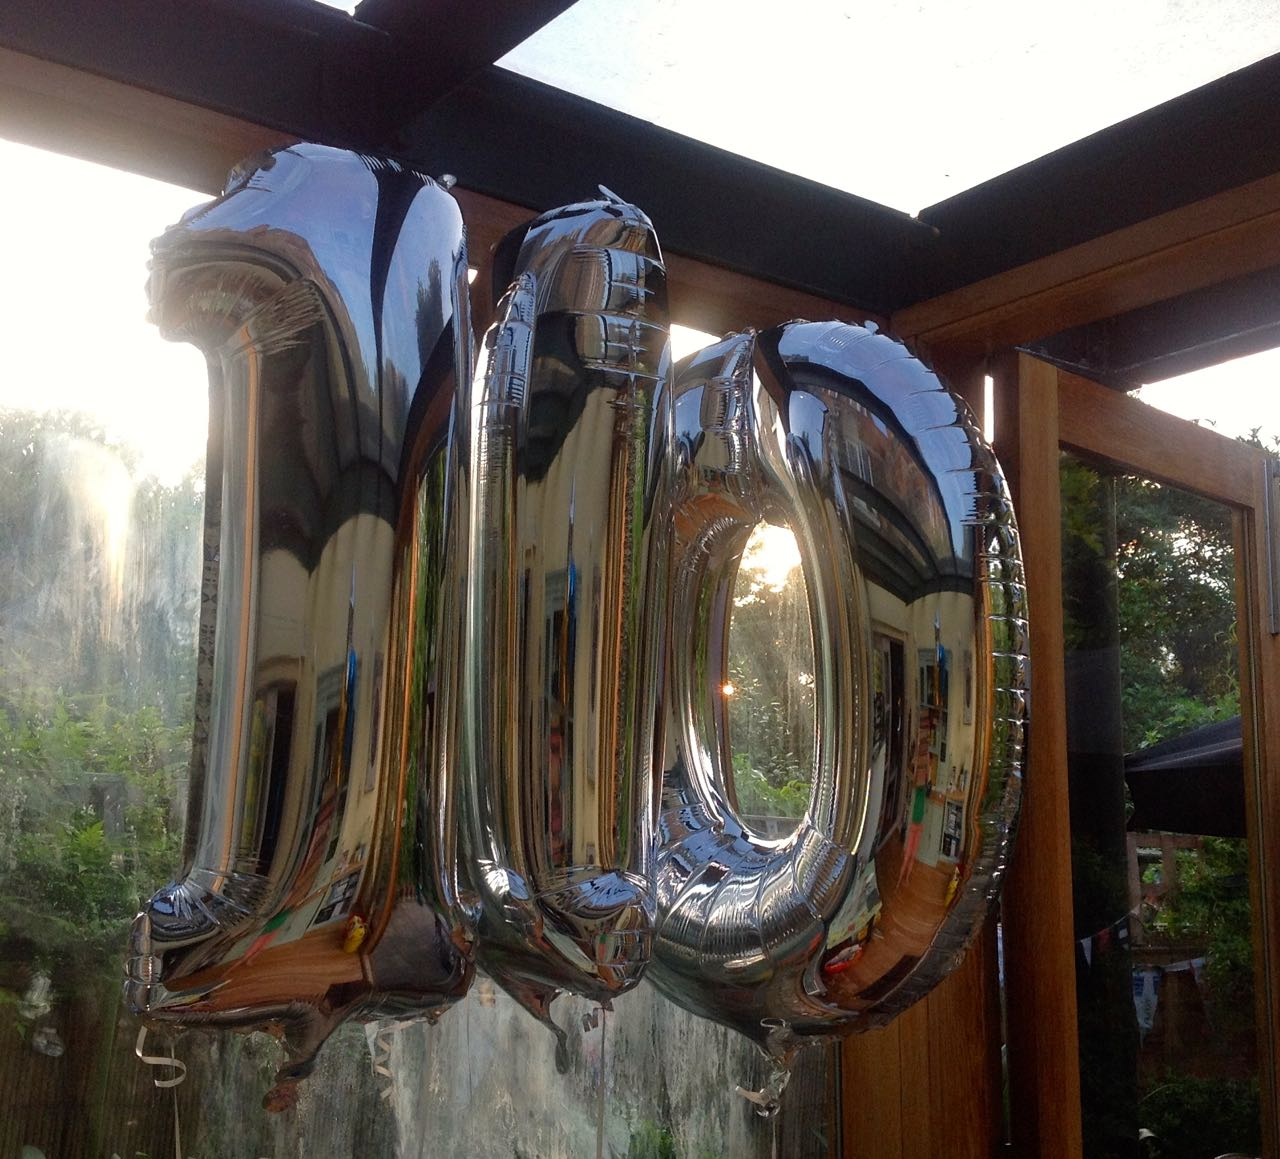 you can't have a party without balloons, can you?